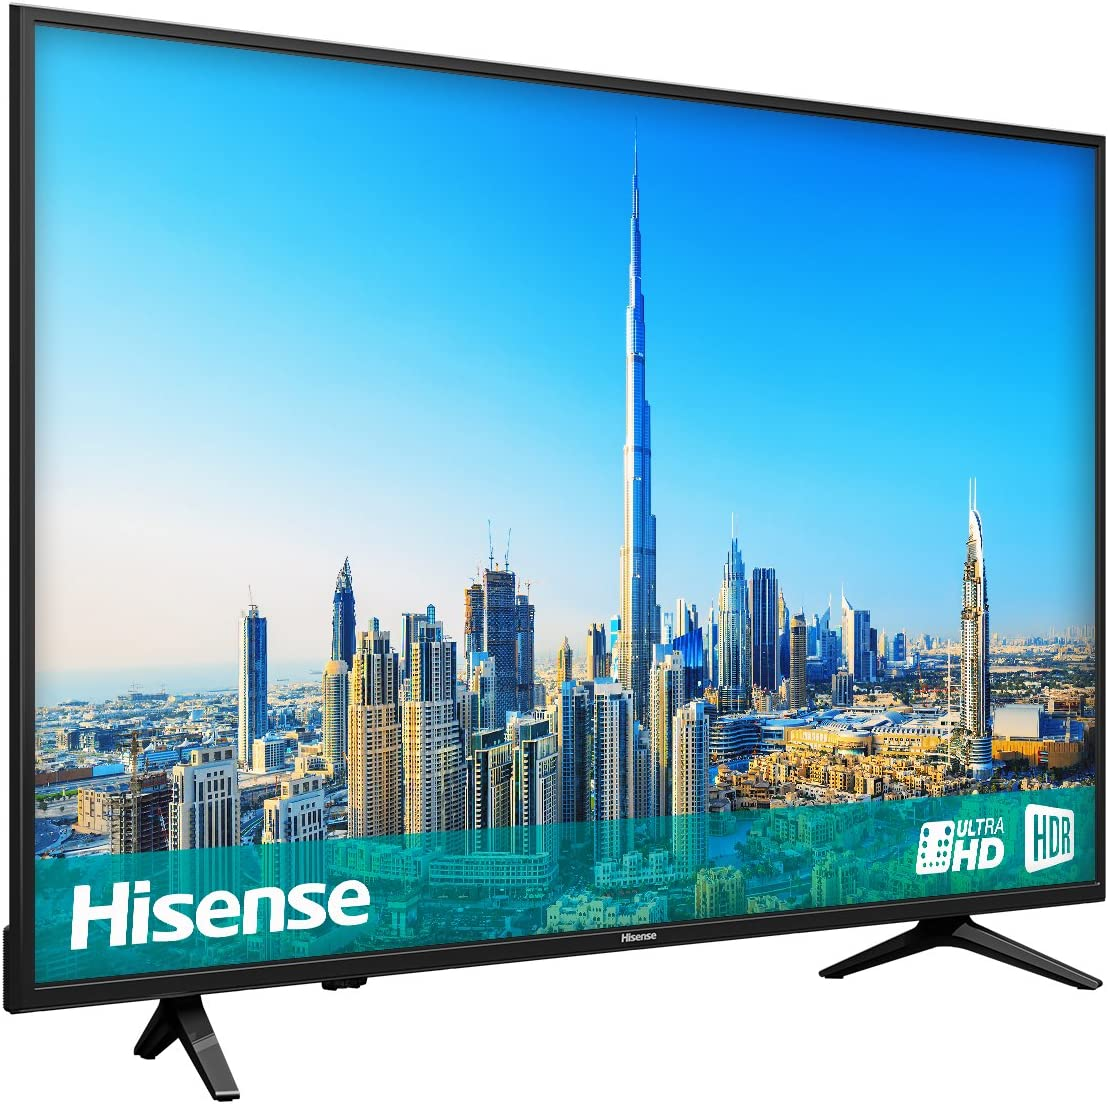 Hisense 43-h 4k Ultra HD Smart TV - Negro: Amazon.es: Electrónica